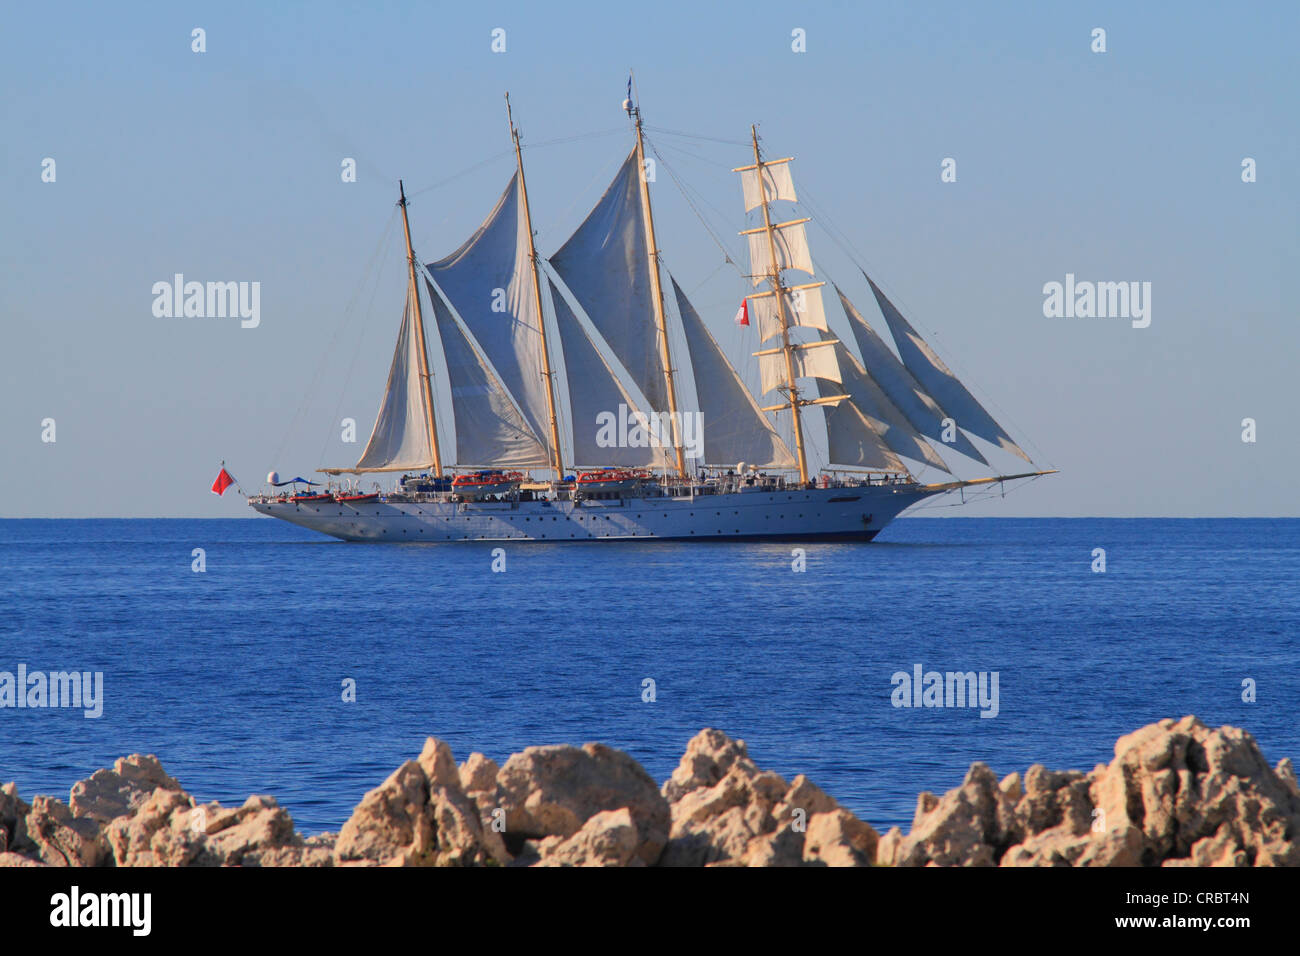 Sailing cruise ship, Star Flyer, at Cap Martin on the way to Monaco, Côte d'Azur, France, Europe Stock Photo